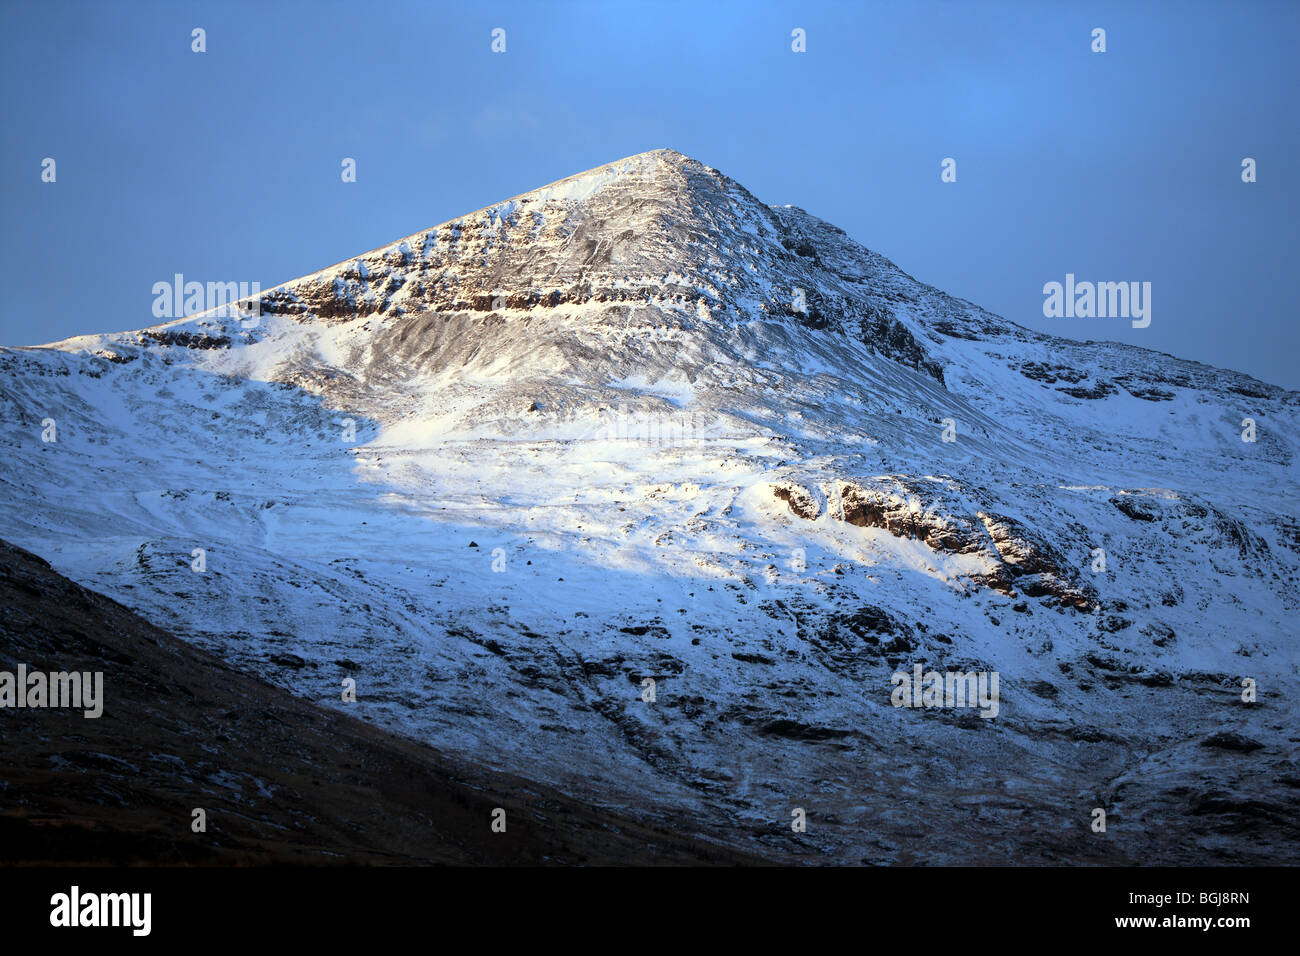 snow capped peak of Ben More on the Isle of Mull - Stock Image